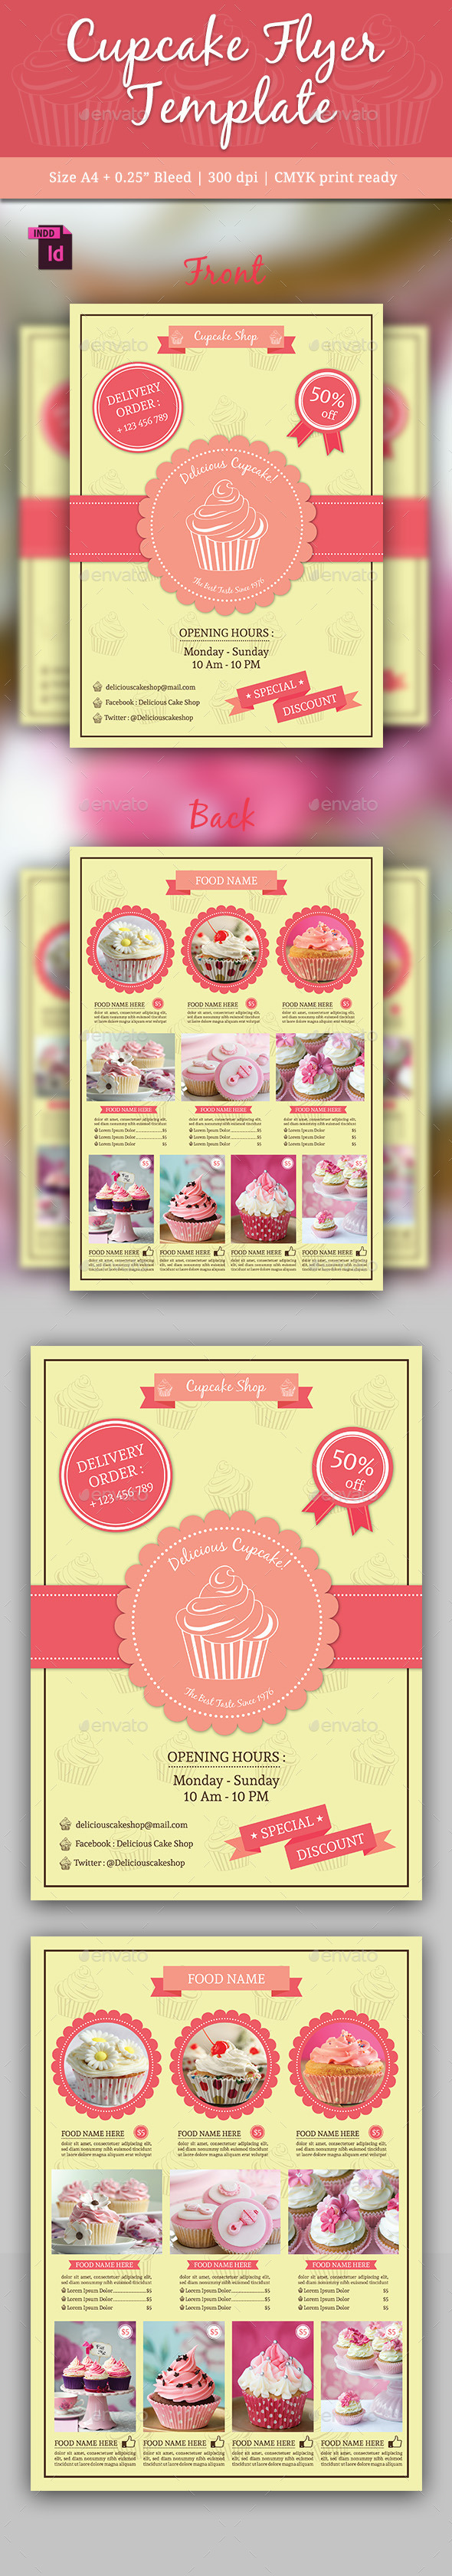 Cupcake Flyer Template Vol. 2 - Flyers Print Templates